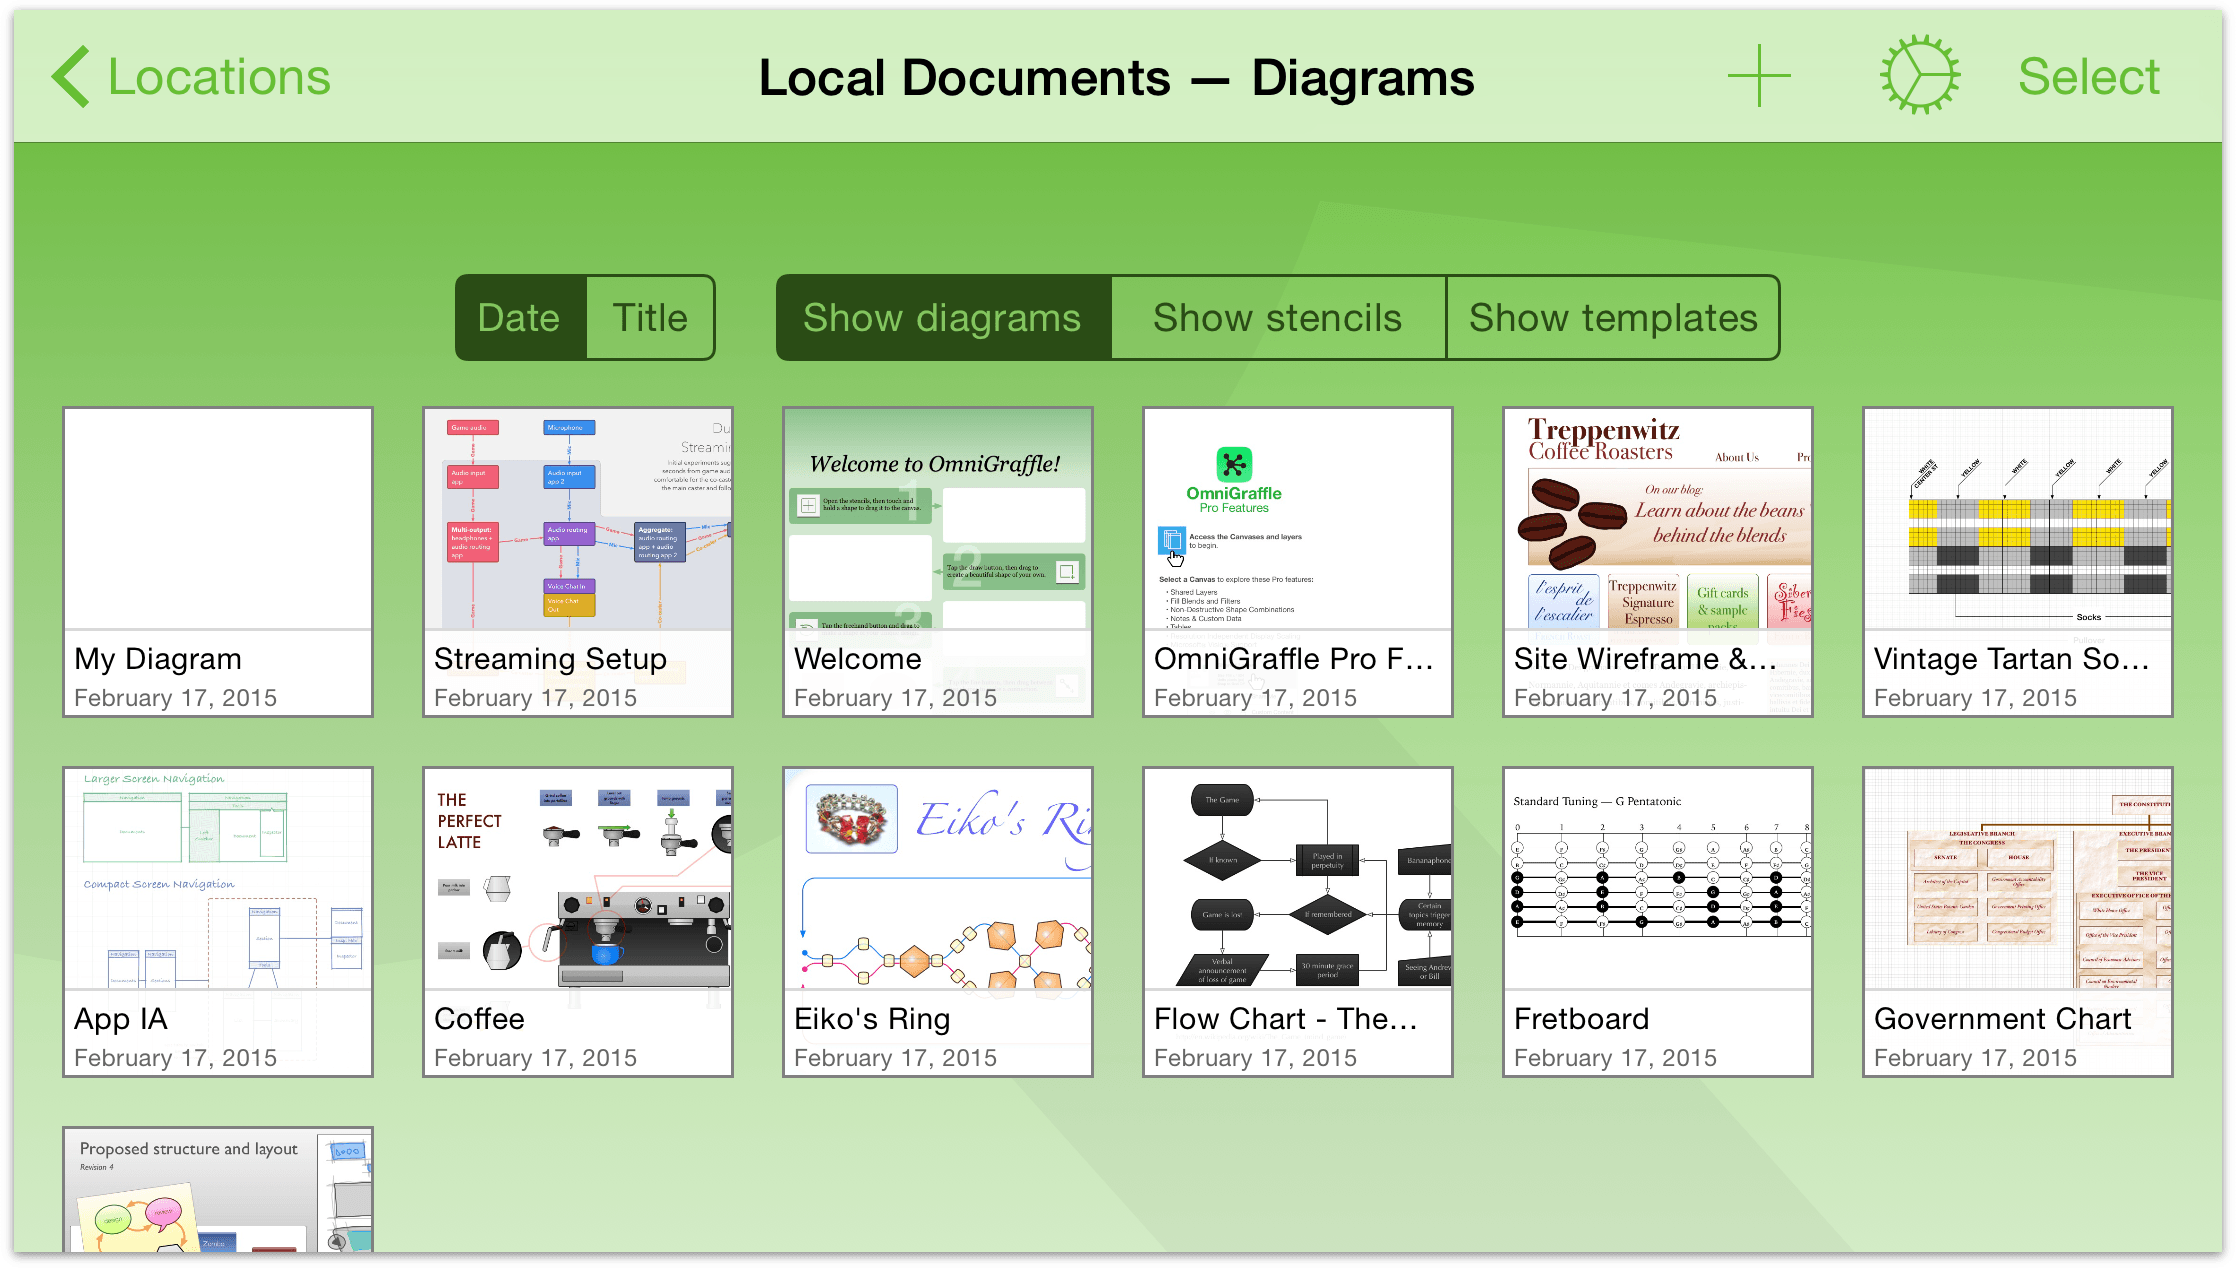 Omnigraffle 28 for ios user manual managing files with the pull down on the screen to find the document organizer ccuart Image collections